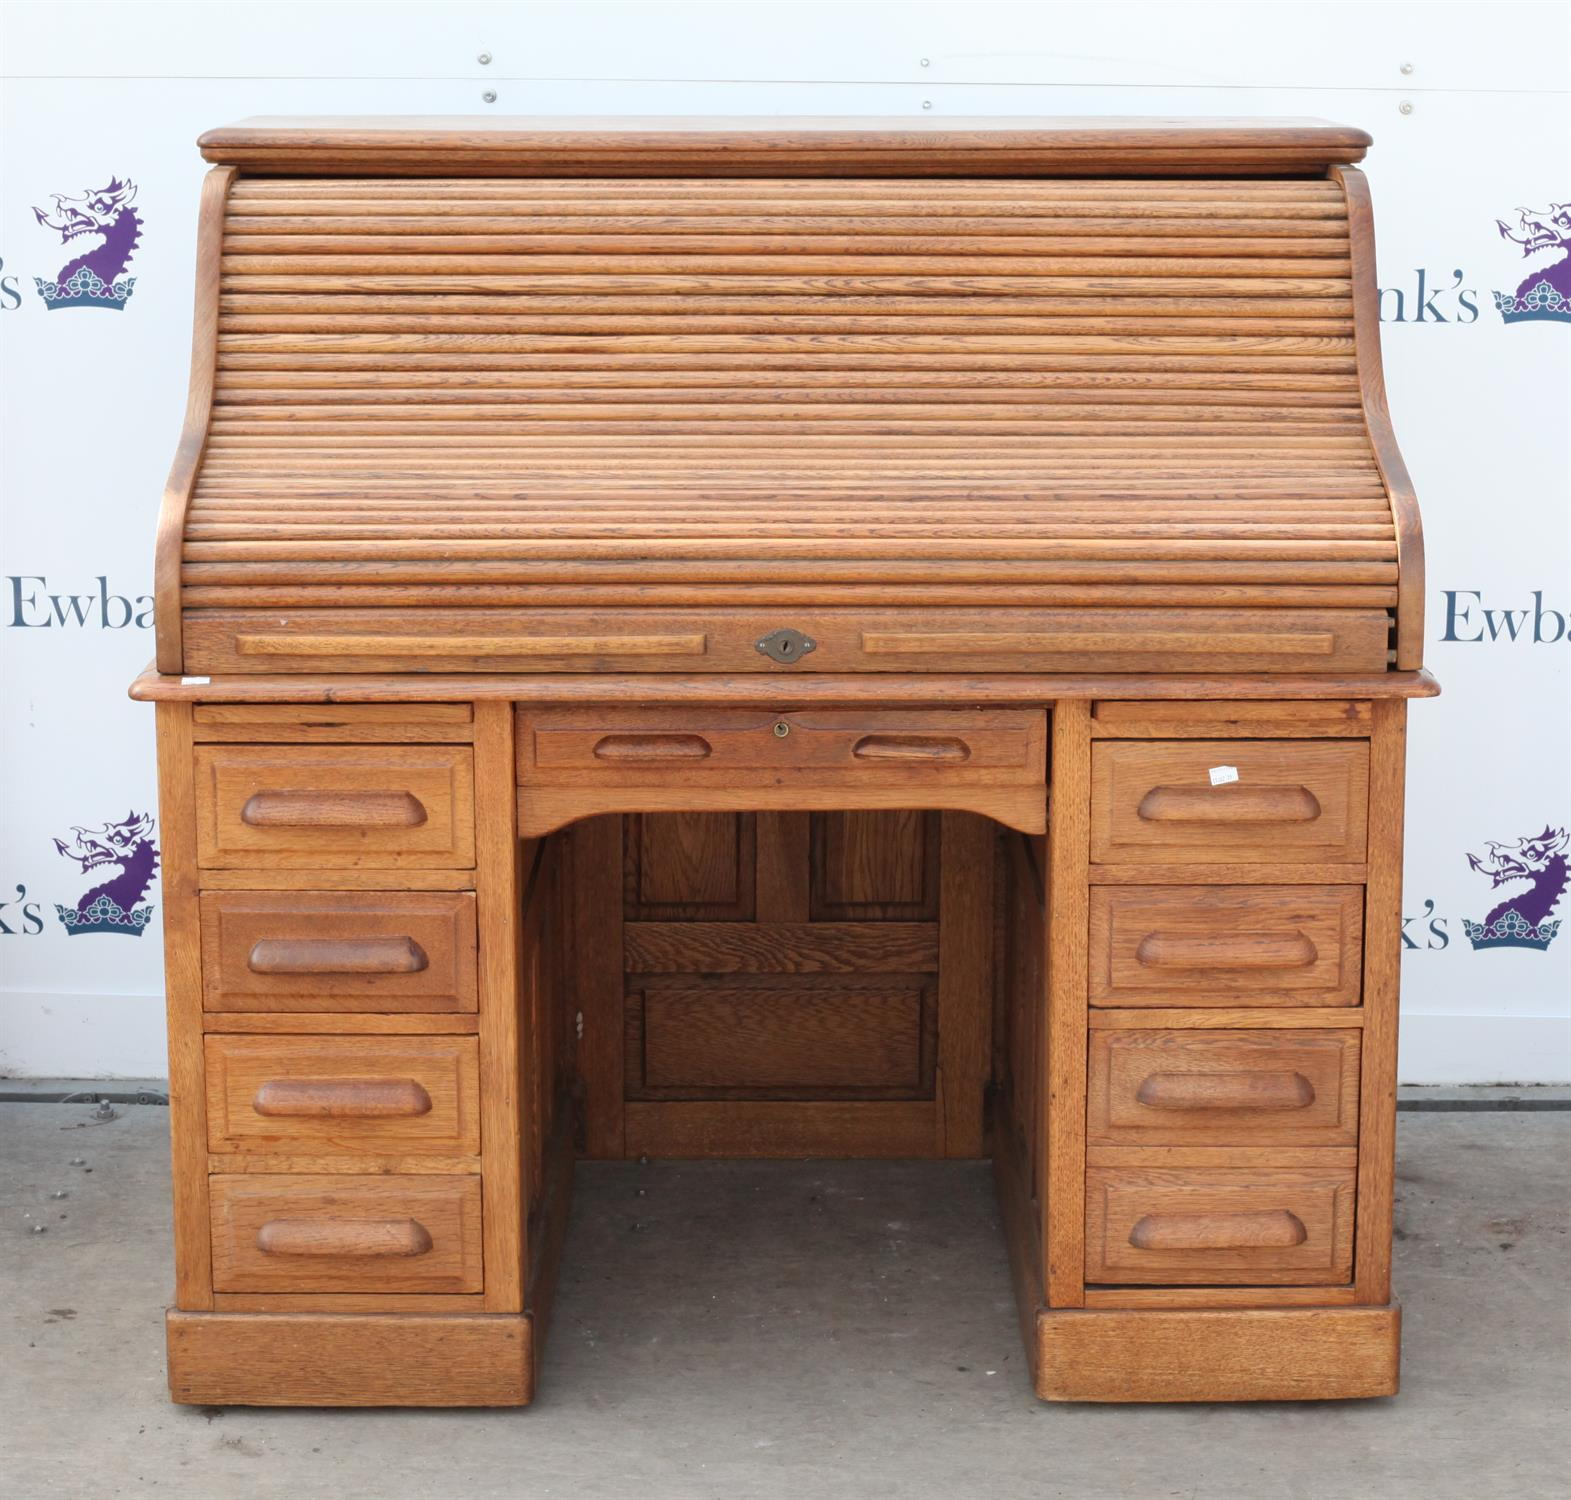 Early 20th century oak roll top desk, the roll top enclosing pigeon holes and drawers on base with - Image 2 of 3